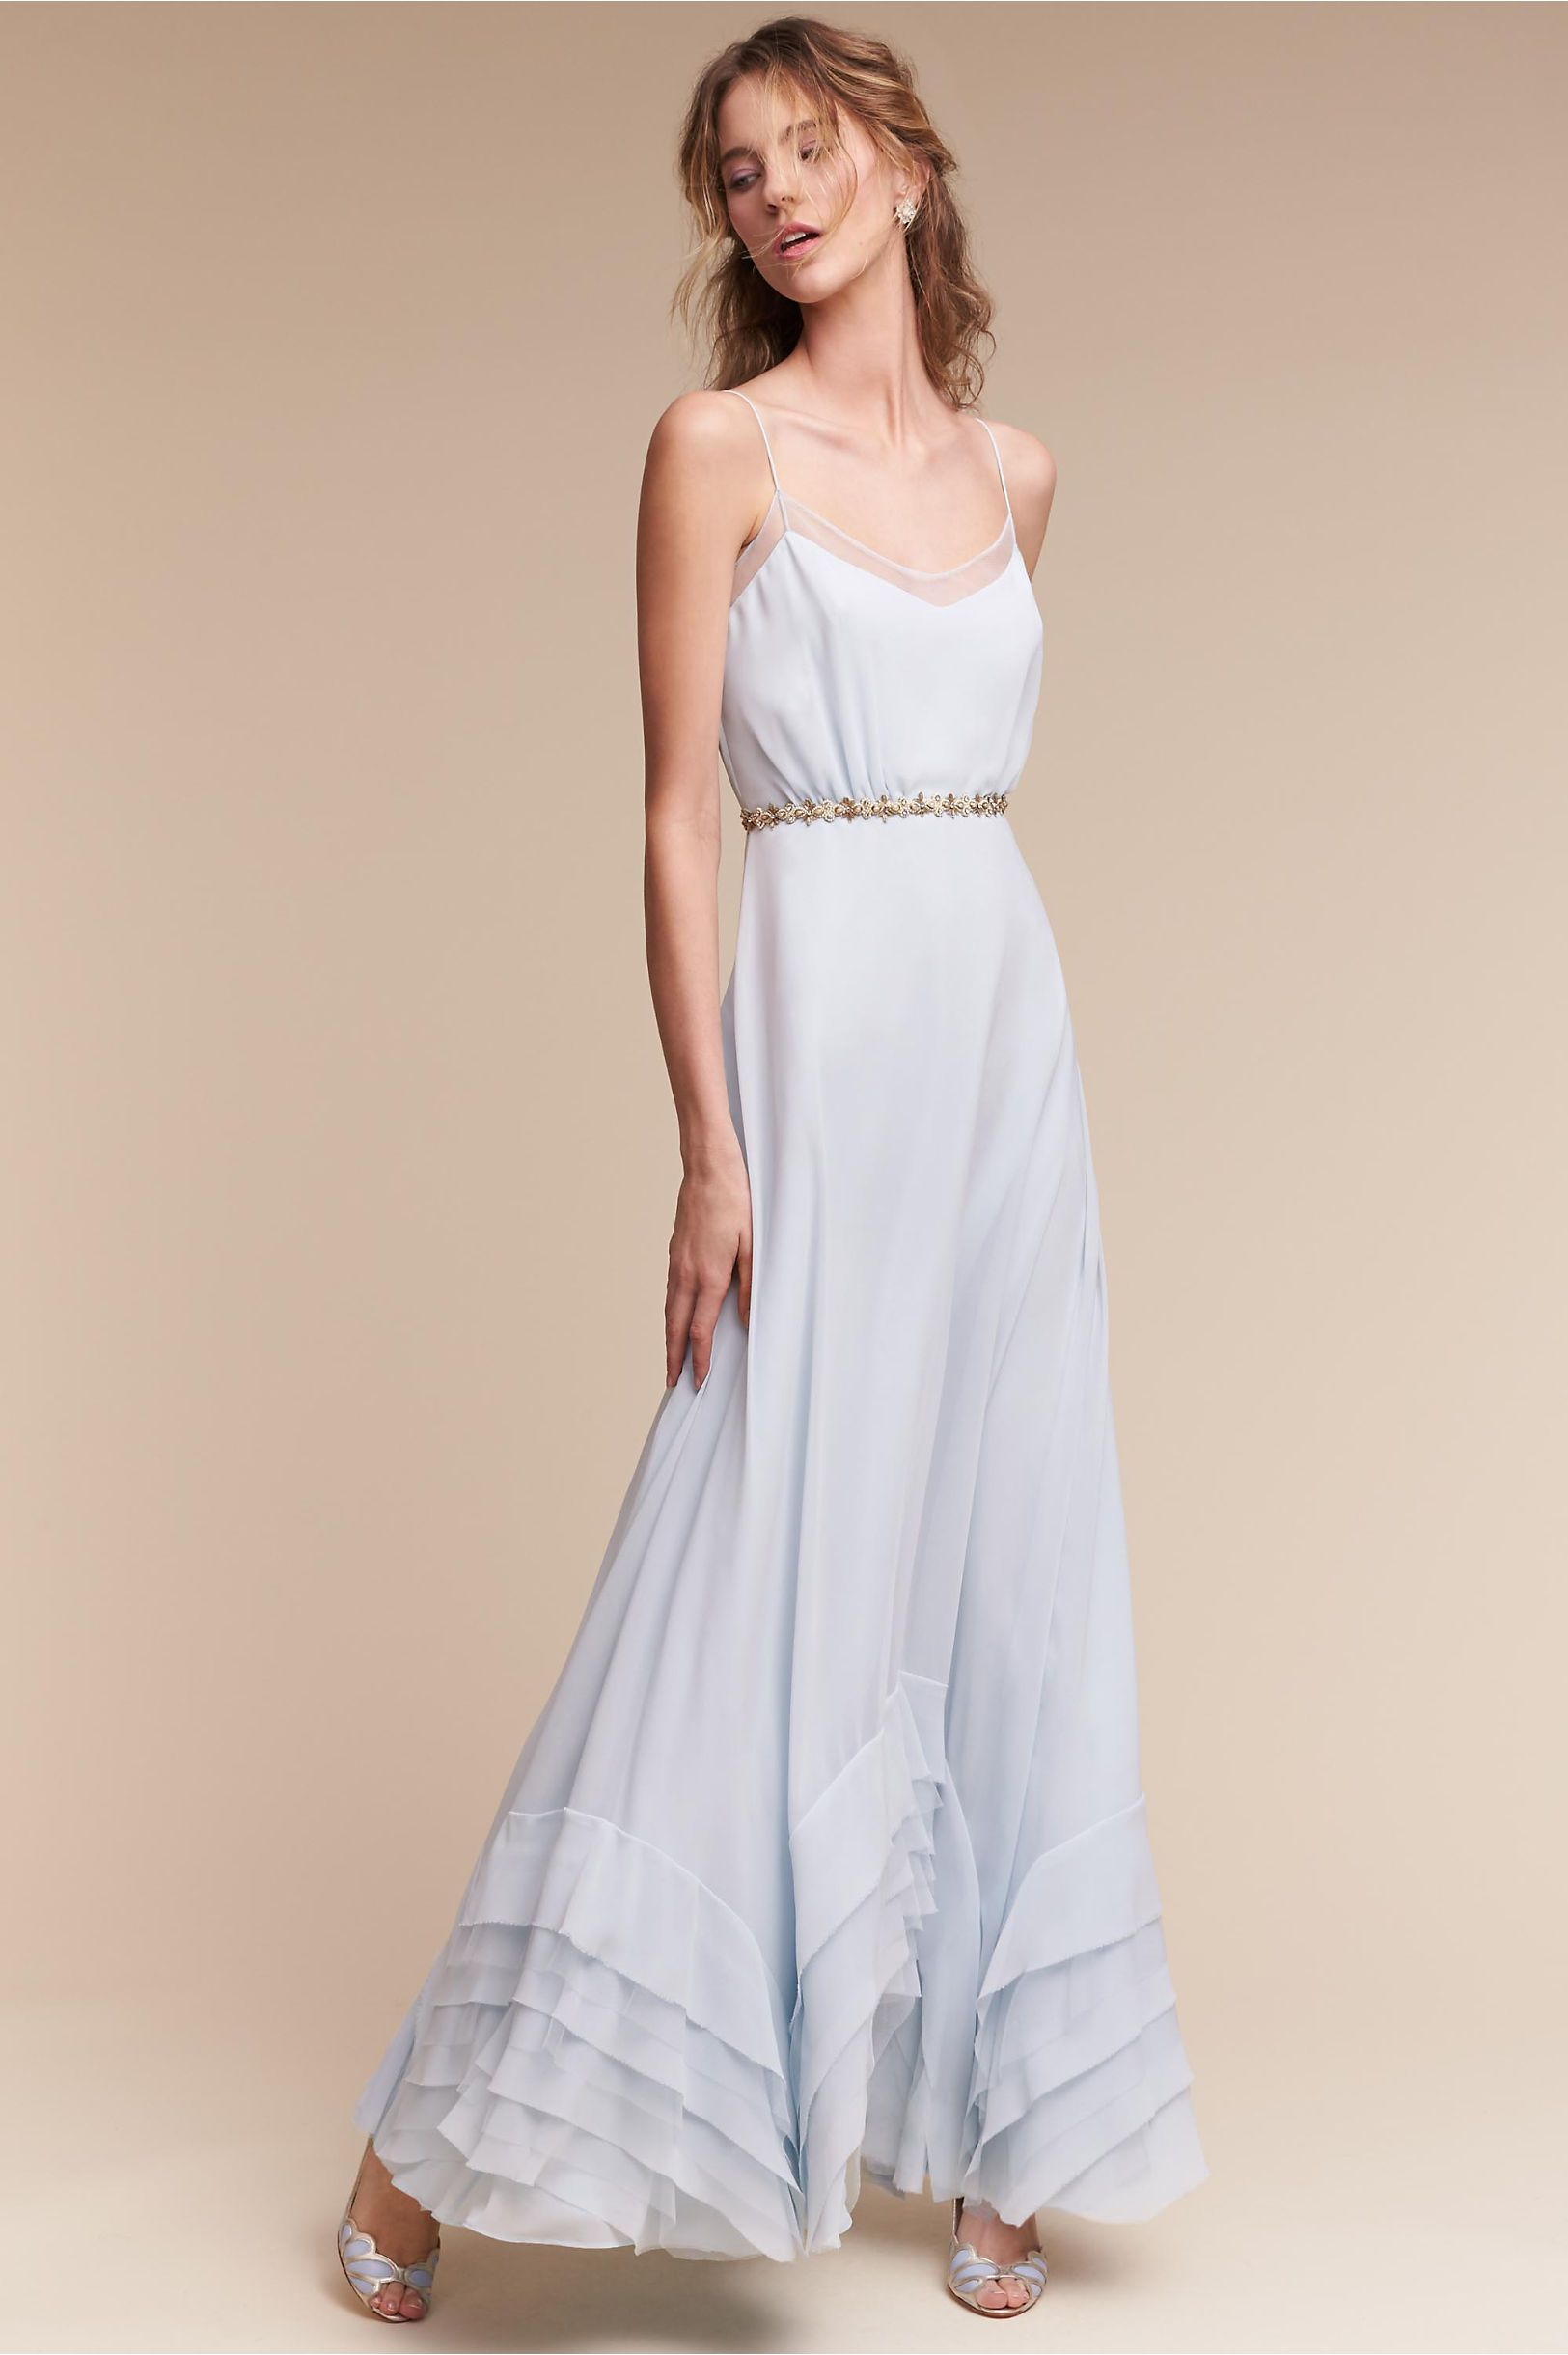 BHLDN Light Blue Dove Dress in Sale BHLDN jazzyjack Pinterest